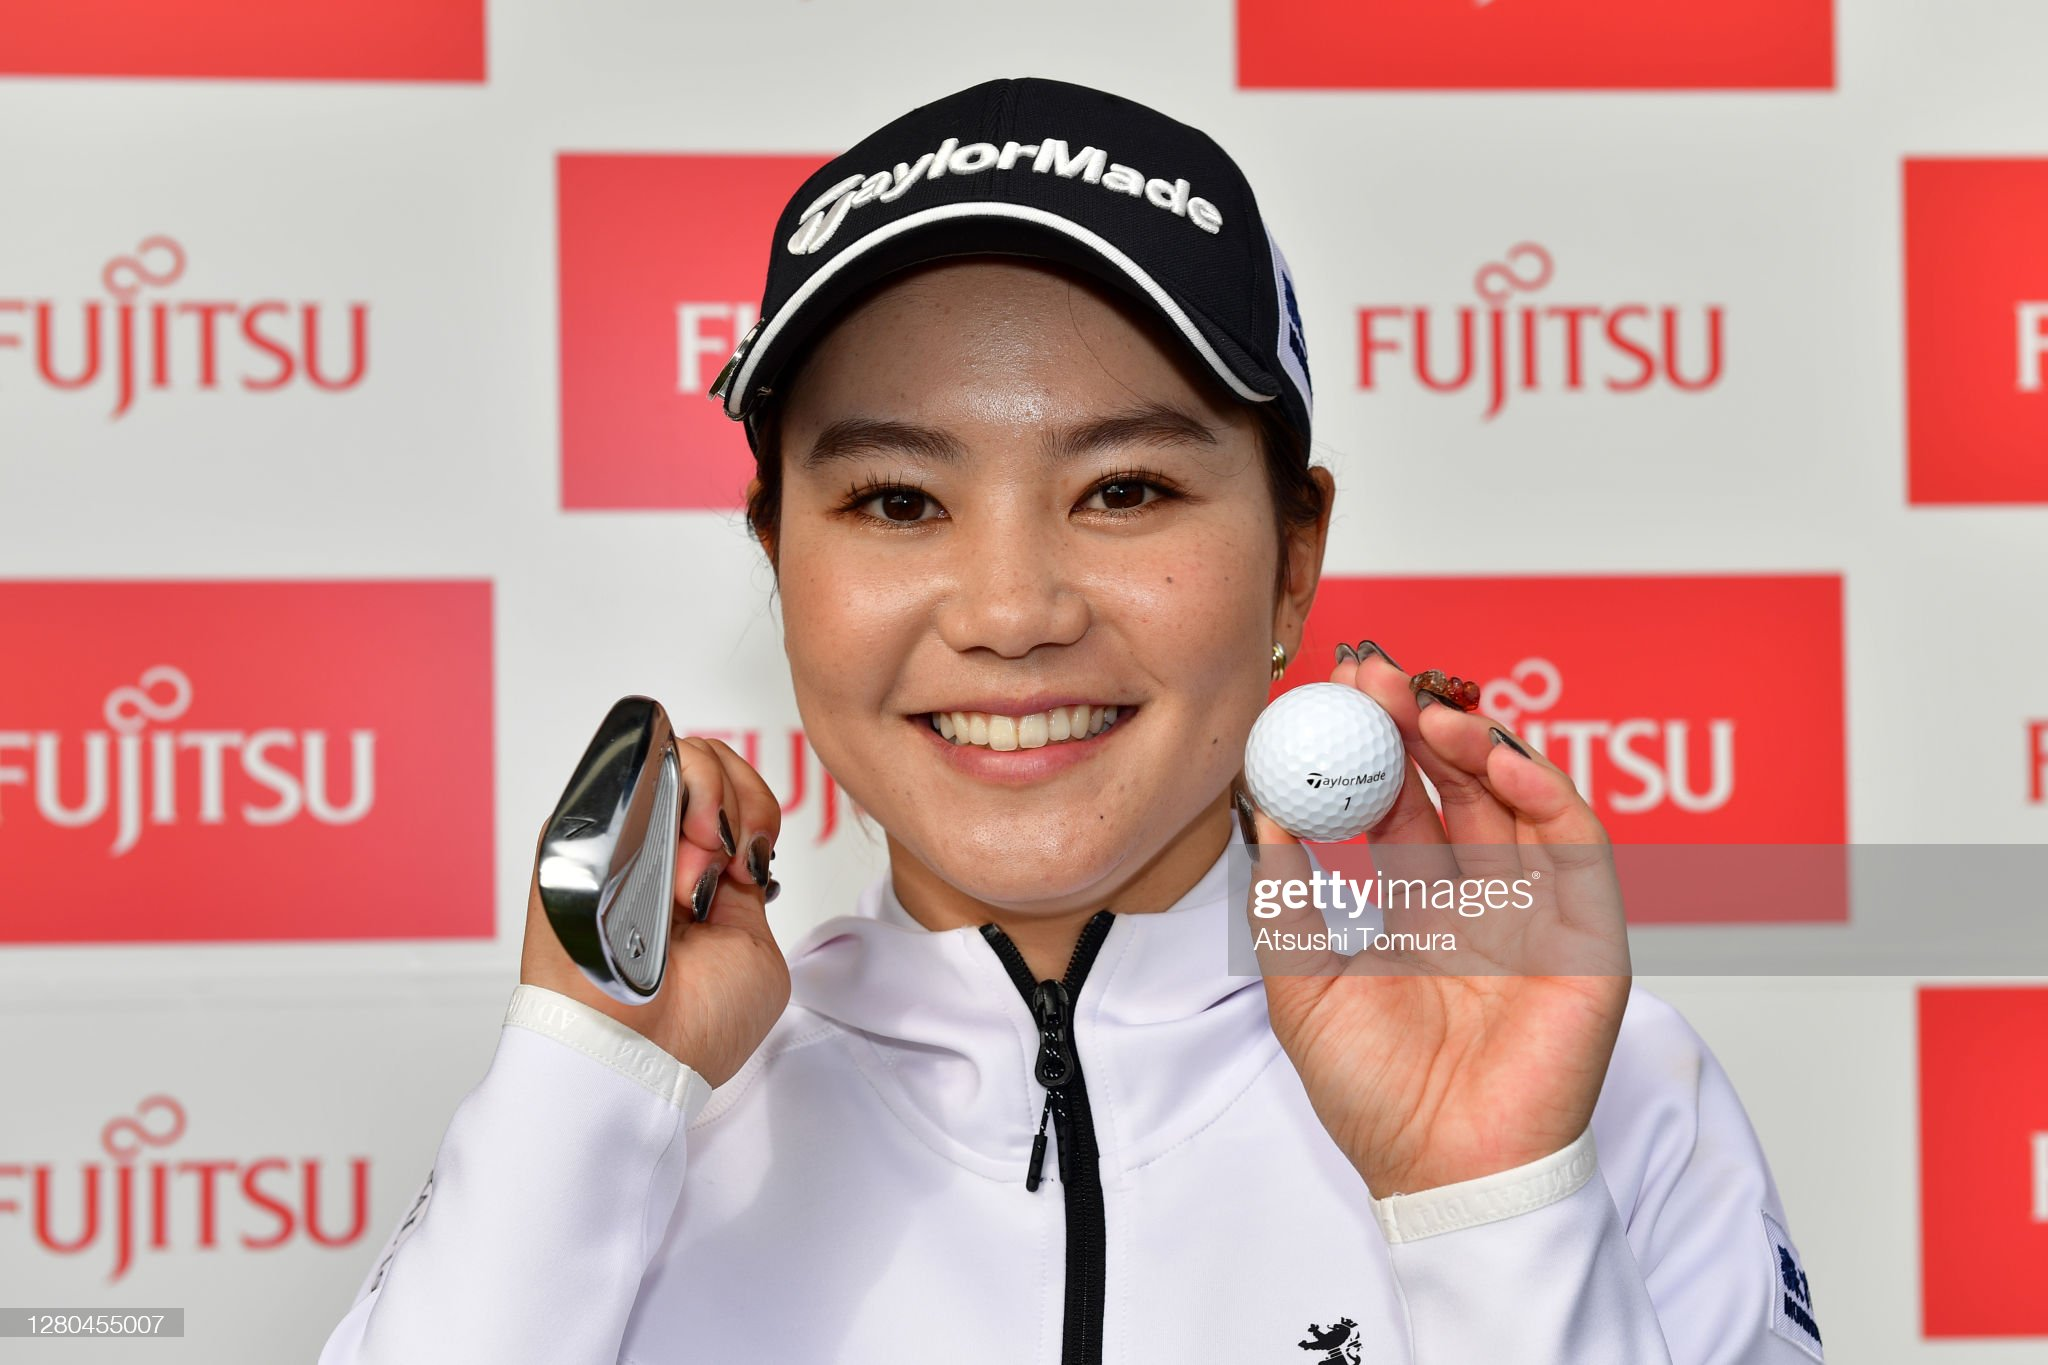 https://media.gettyimages.com/photos/akira-yamaji-of-japan-poses-as-she-made-a-holeinone-on-the-17th-hole-picture-id1280455007?s=2048x2048